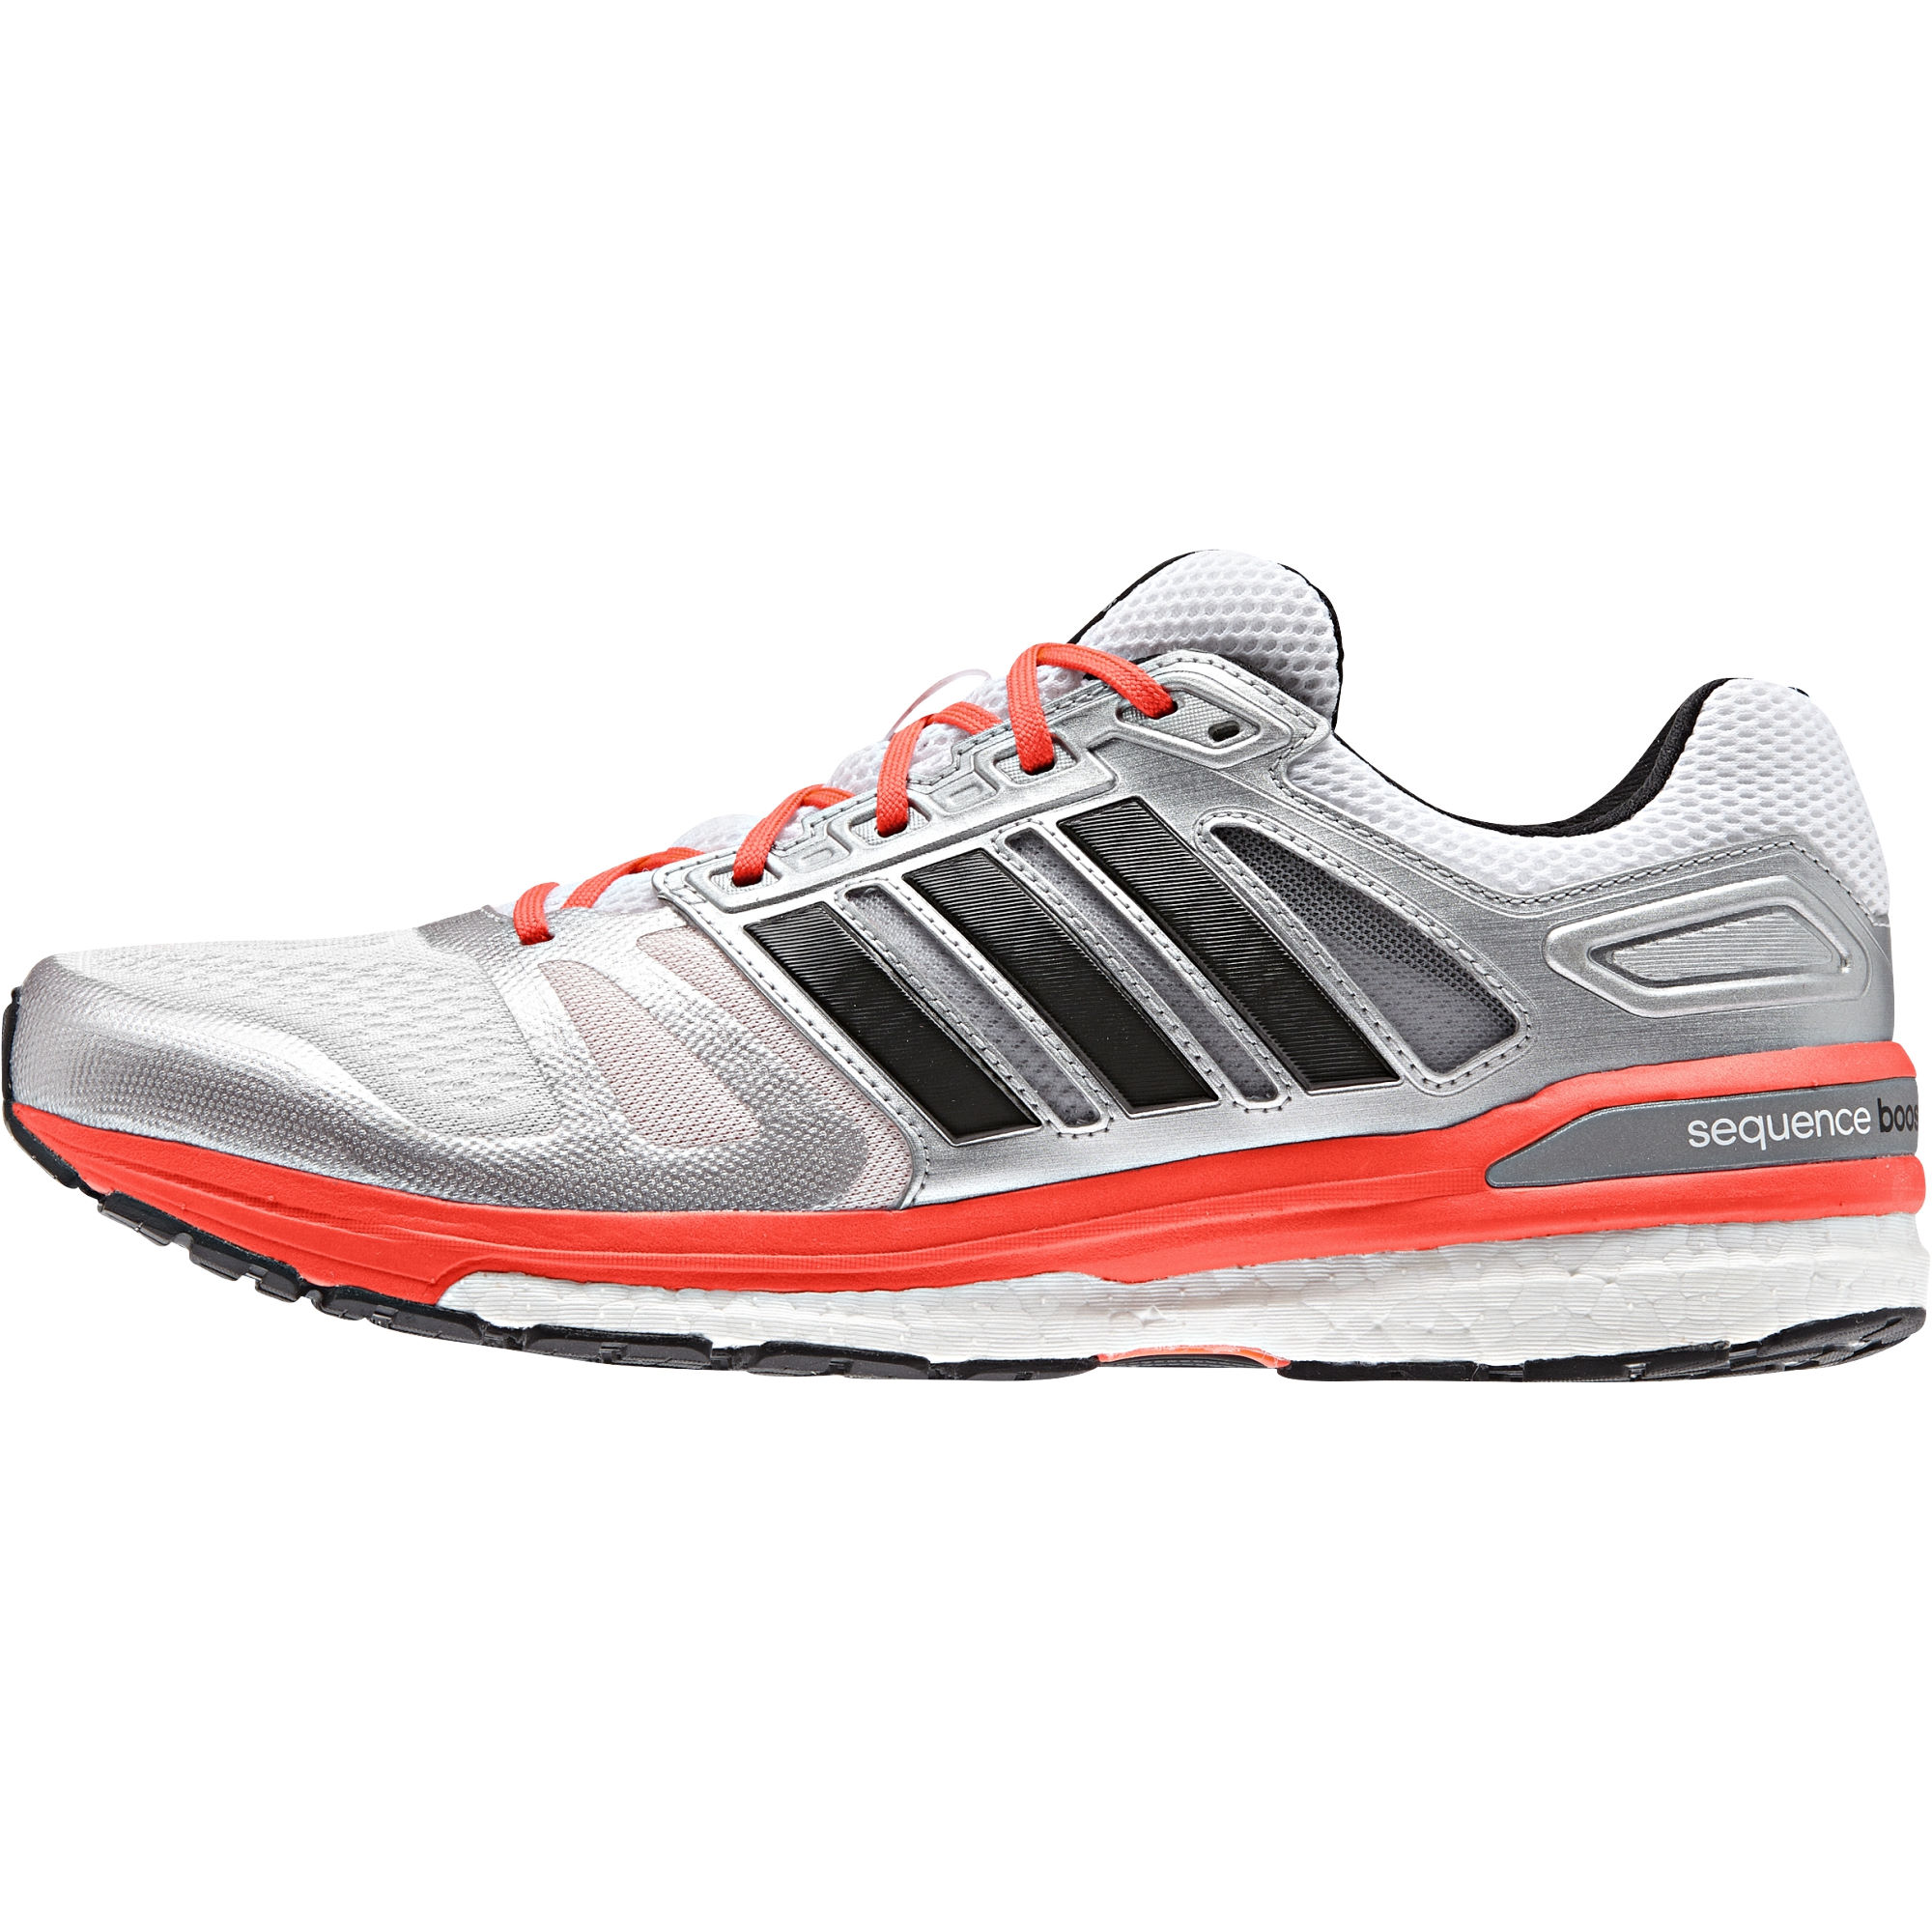 Adidas Mens Supernova Sequence  Boost Stability Running Shoes